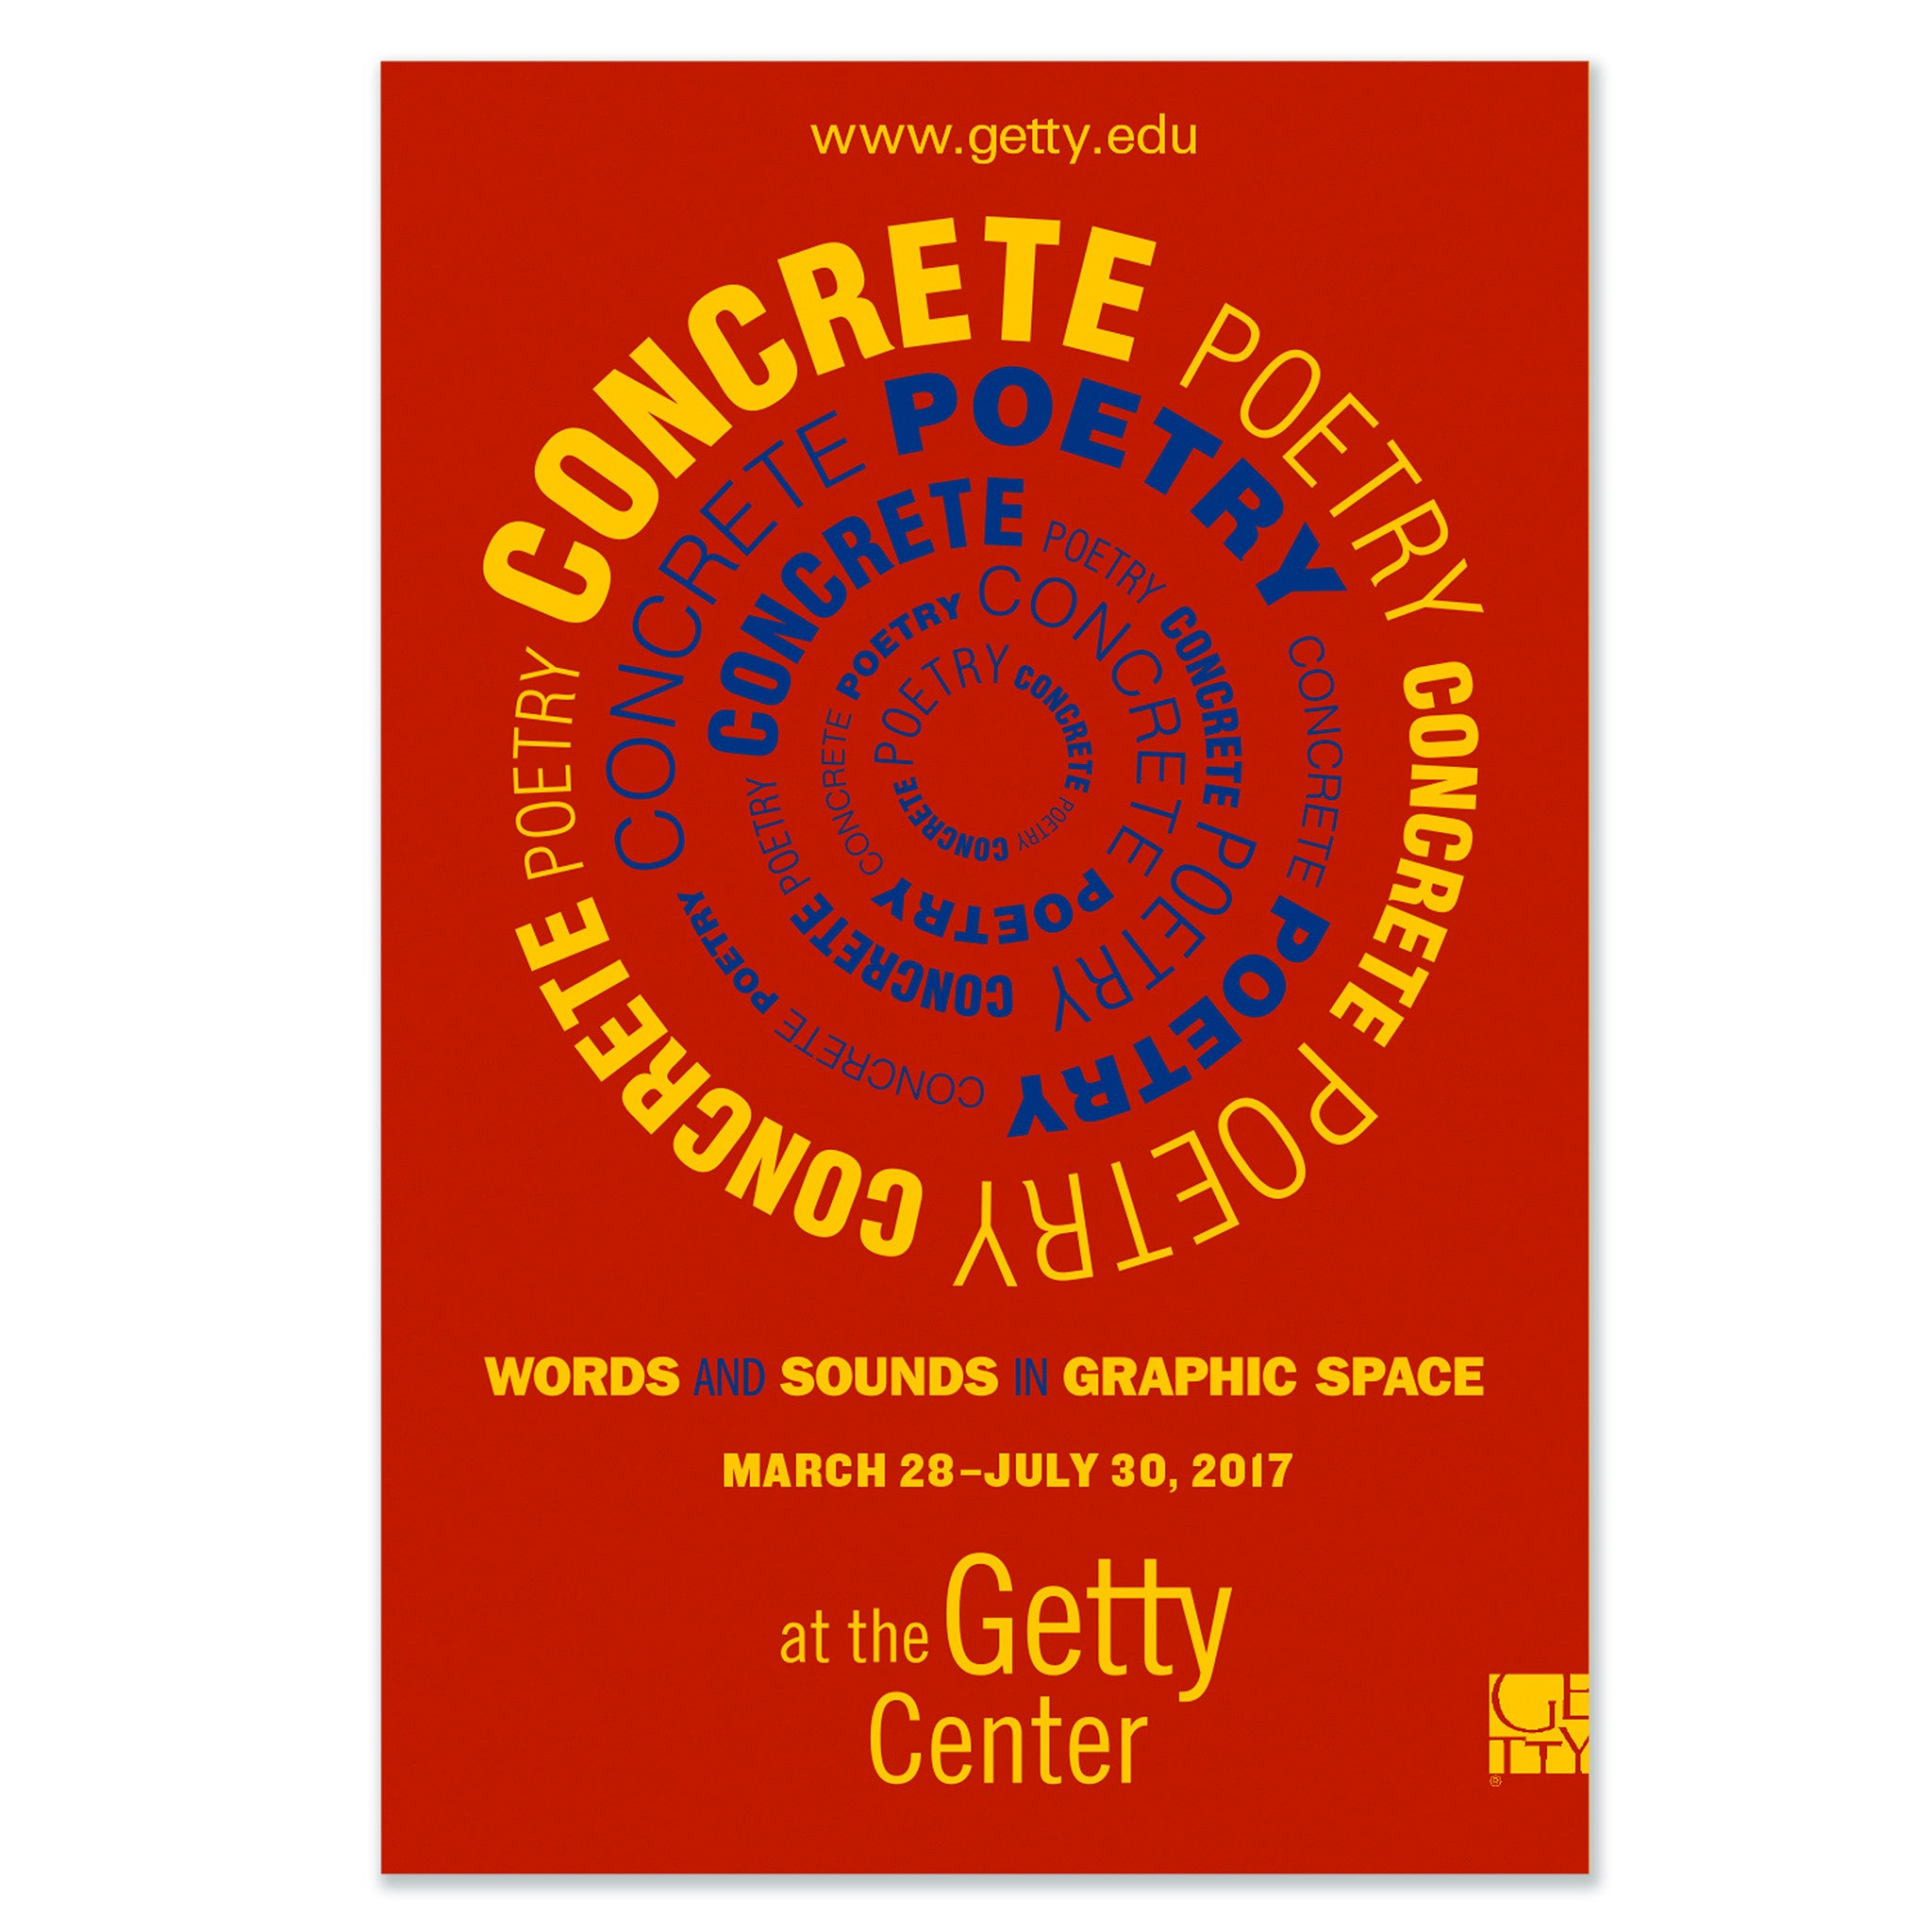 Concrete Poetry Exhibition Poster - Red – The Getty Store